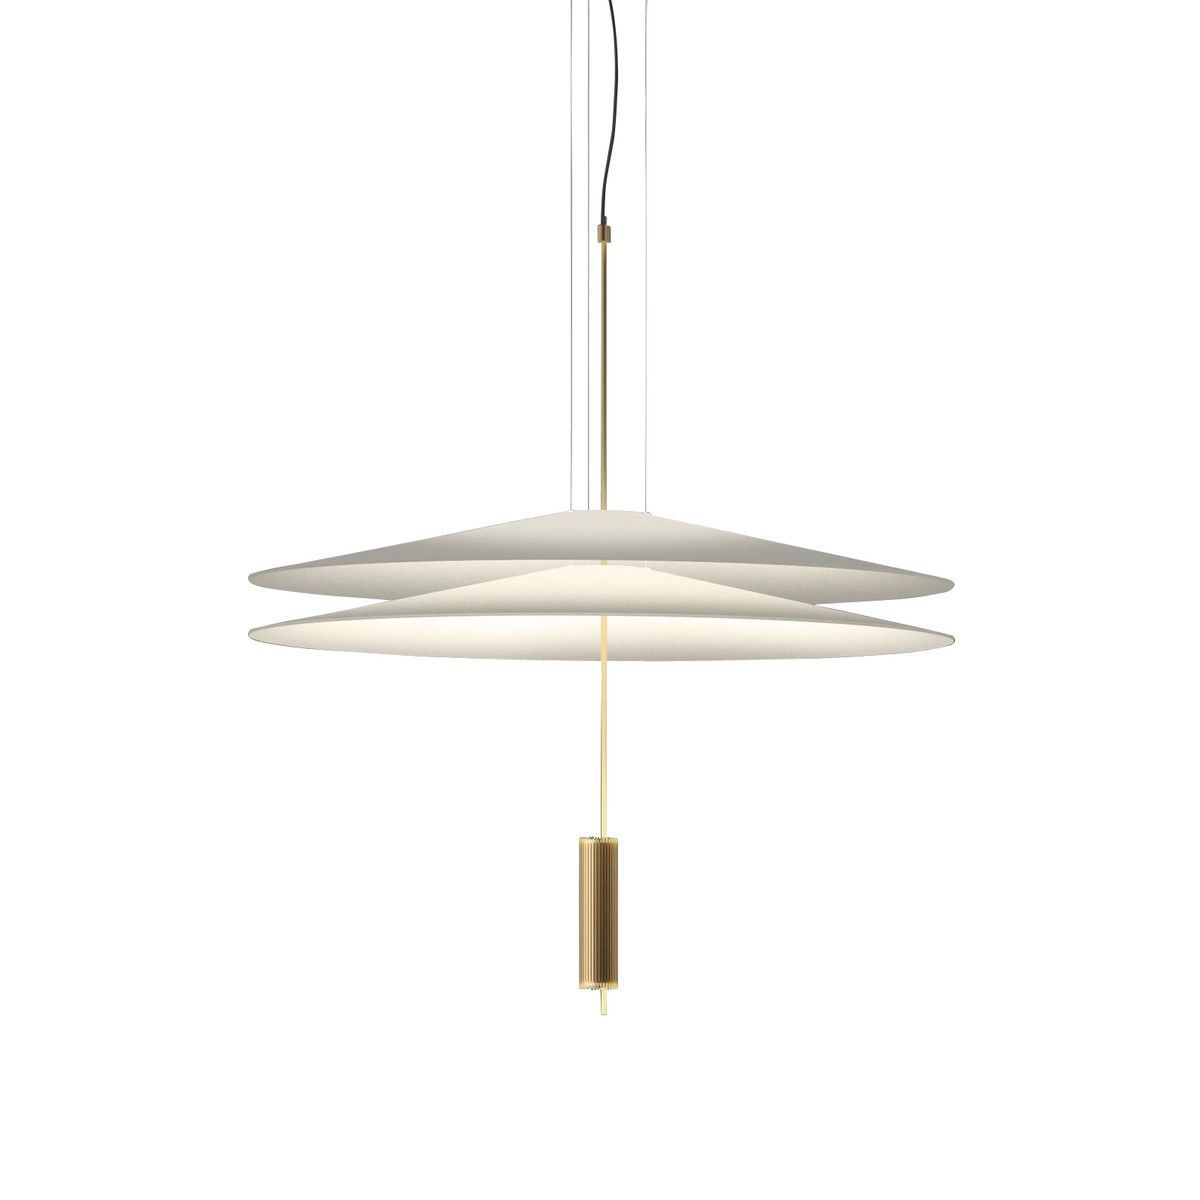 flamingo 1510 led suspension lamp vibia. Black Bedroom Furniture Sets. Home Design Ideas